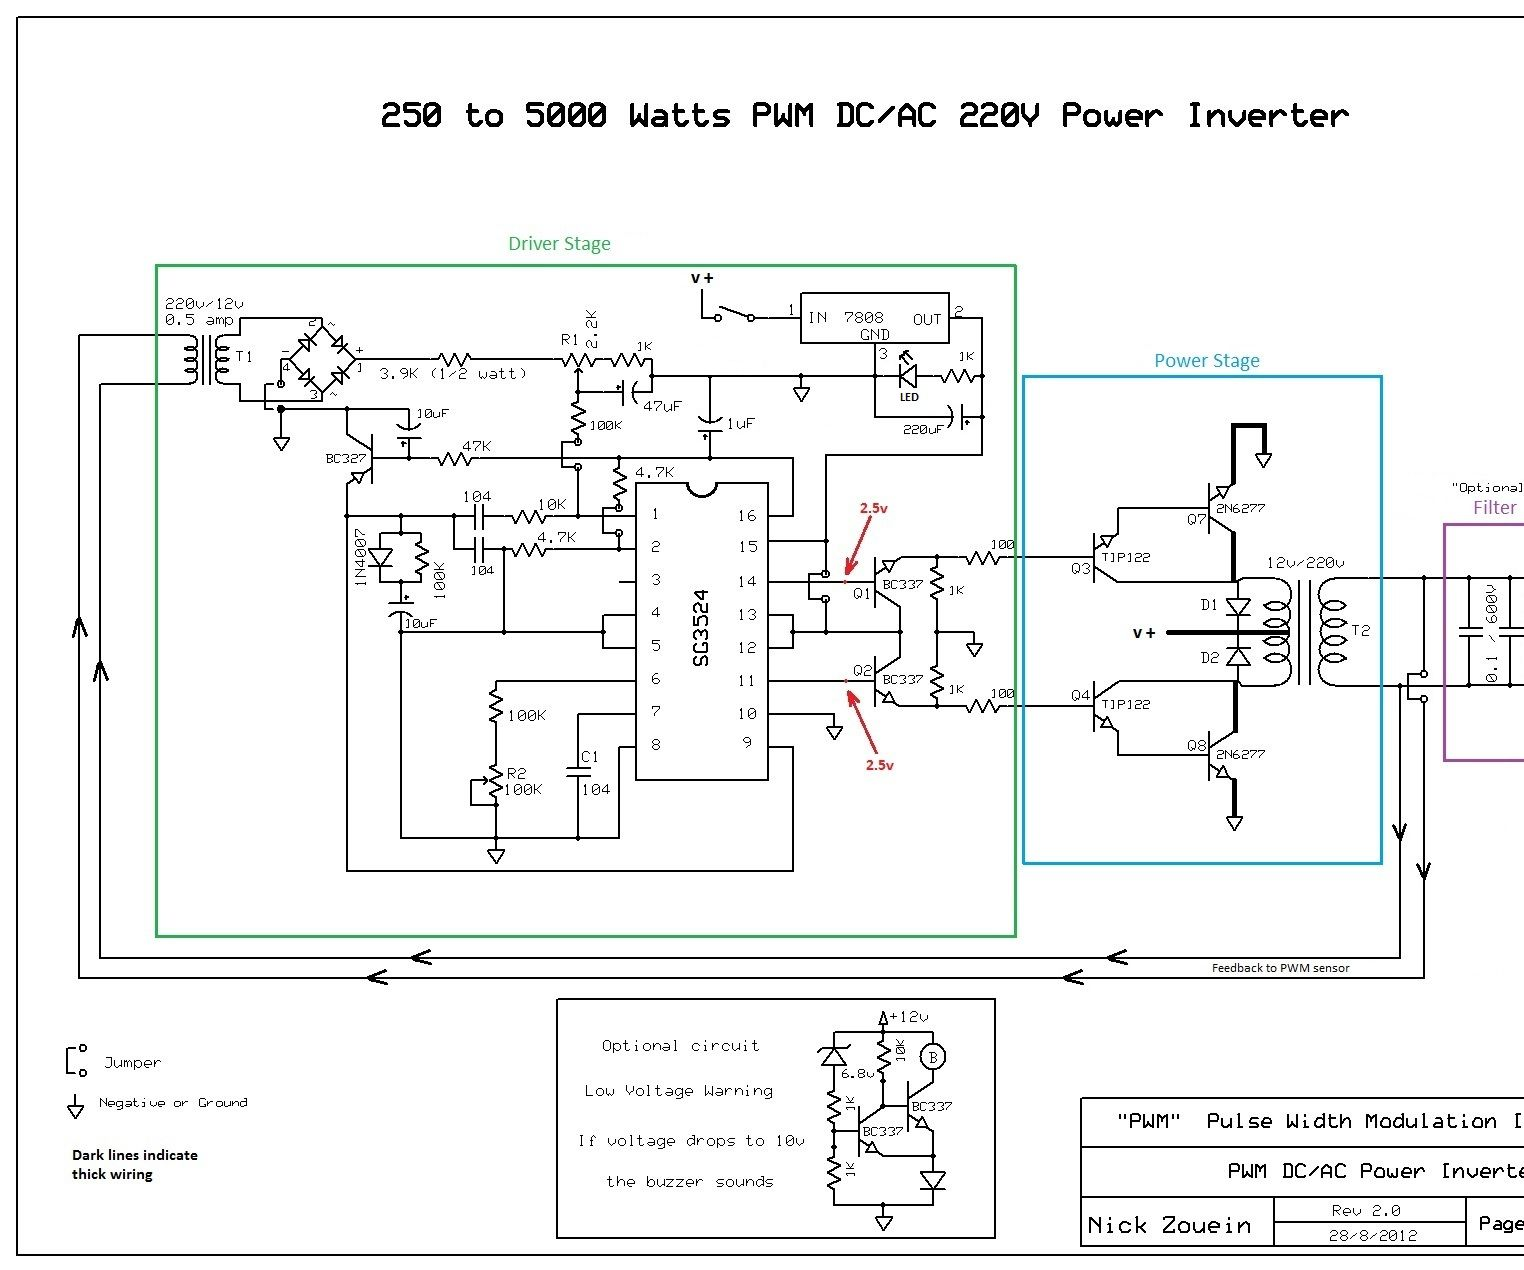 medium resolution of 250 to 5000 watts pwm dc ac 220v power inverter pin 300w atx schematic diagram on pinterest